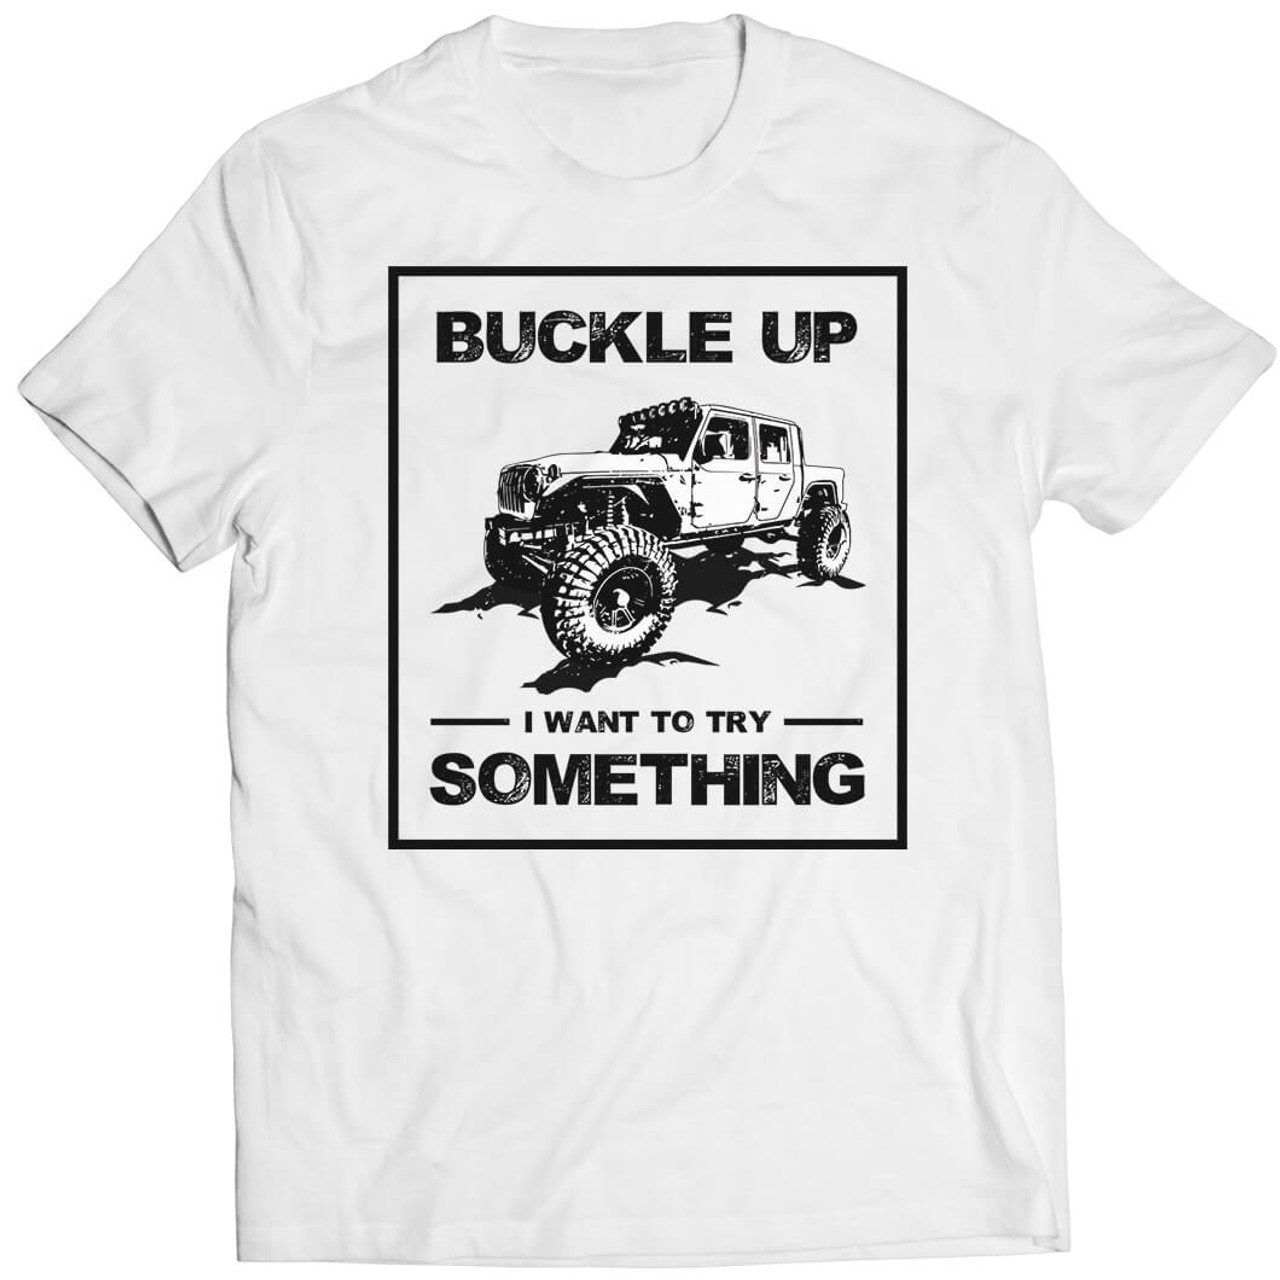 Buckle Up I Want To Try Something - Tshirt